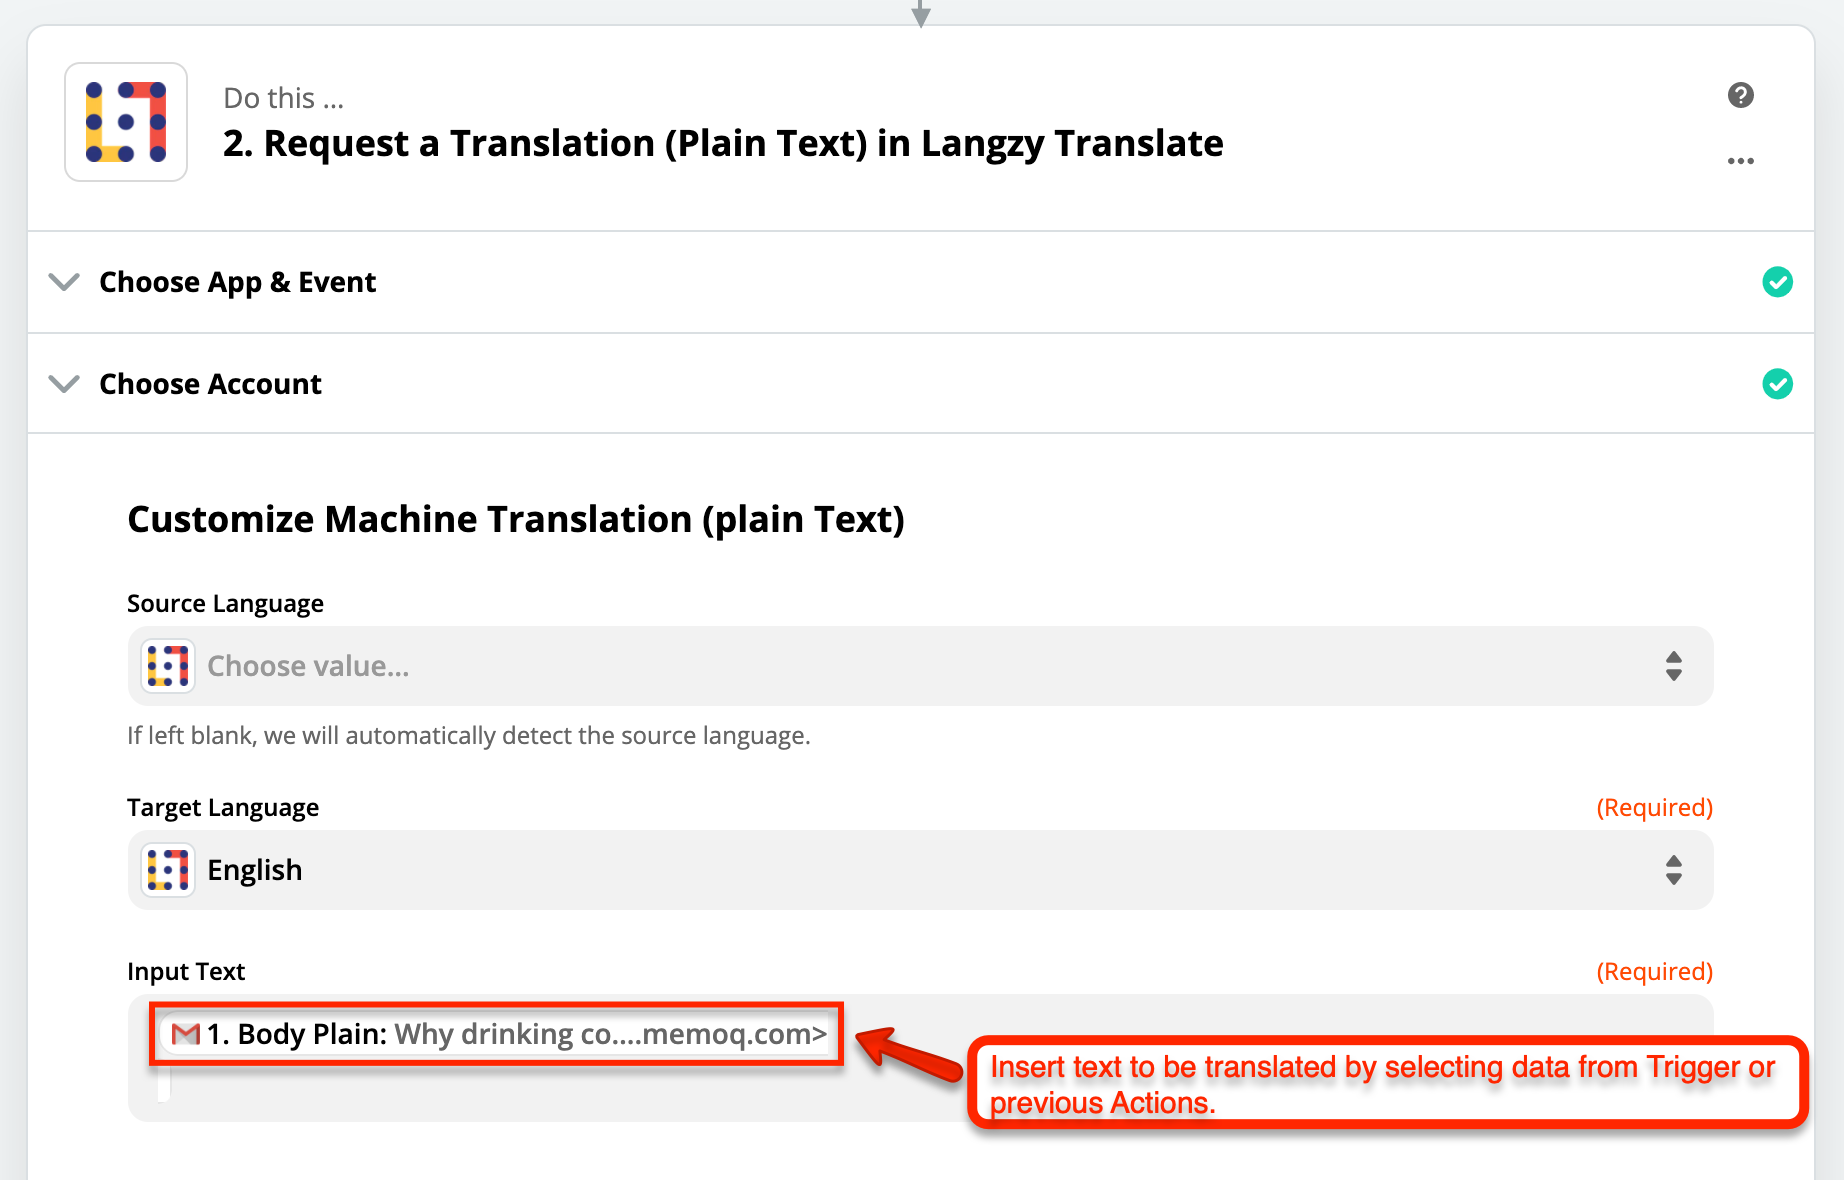 Configure your translation action: select the source language, target language, and the text to be translated. You can use data from Trigger or previous Actions.